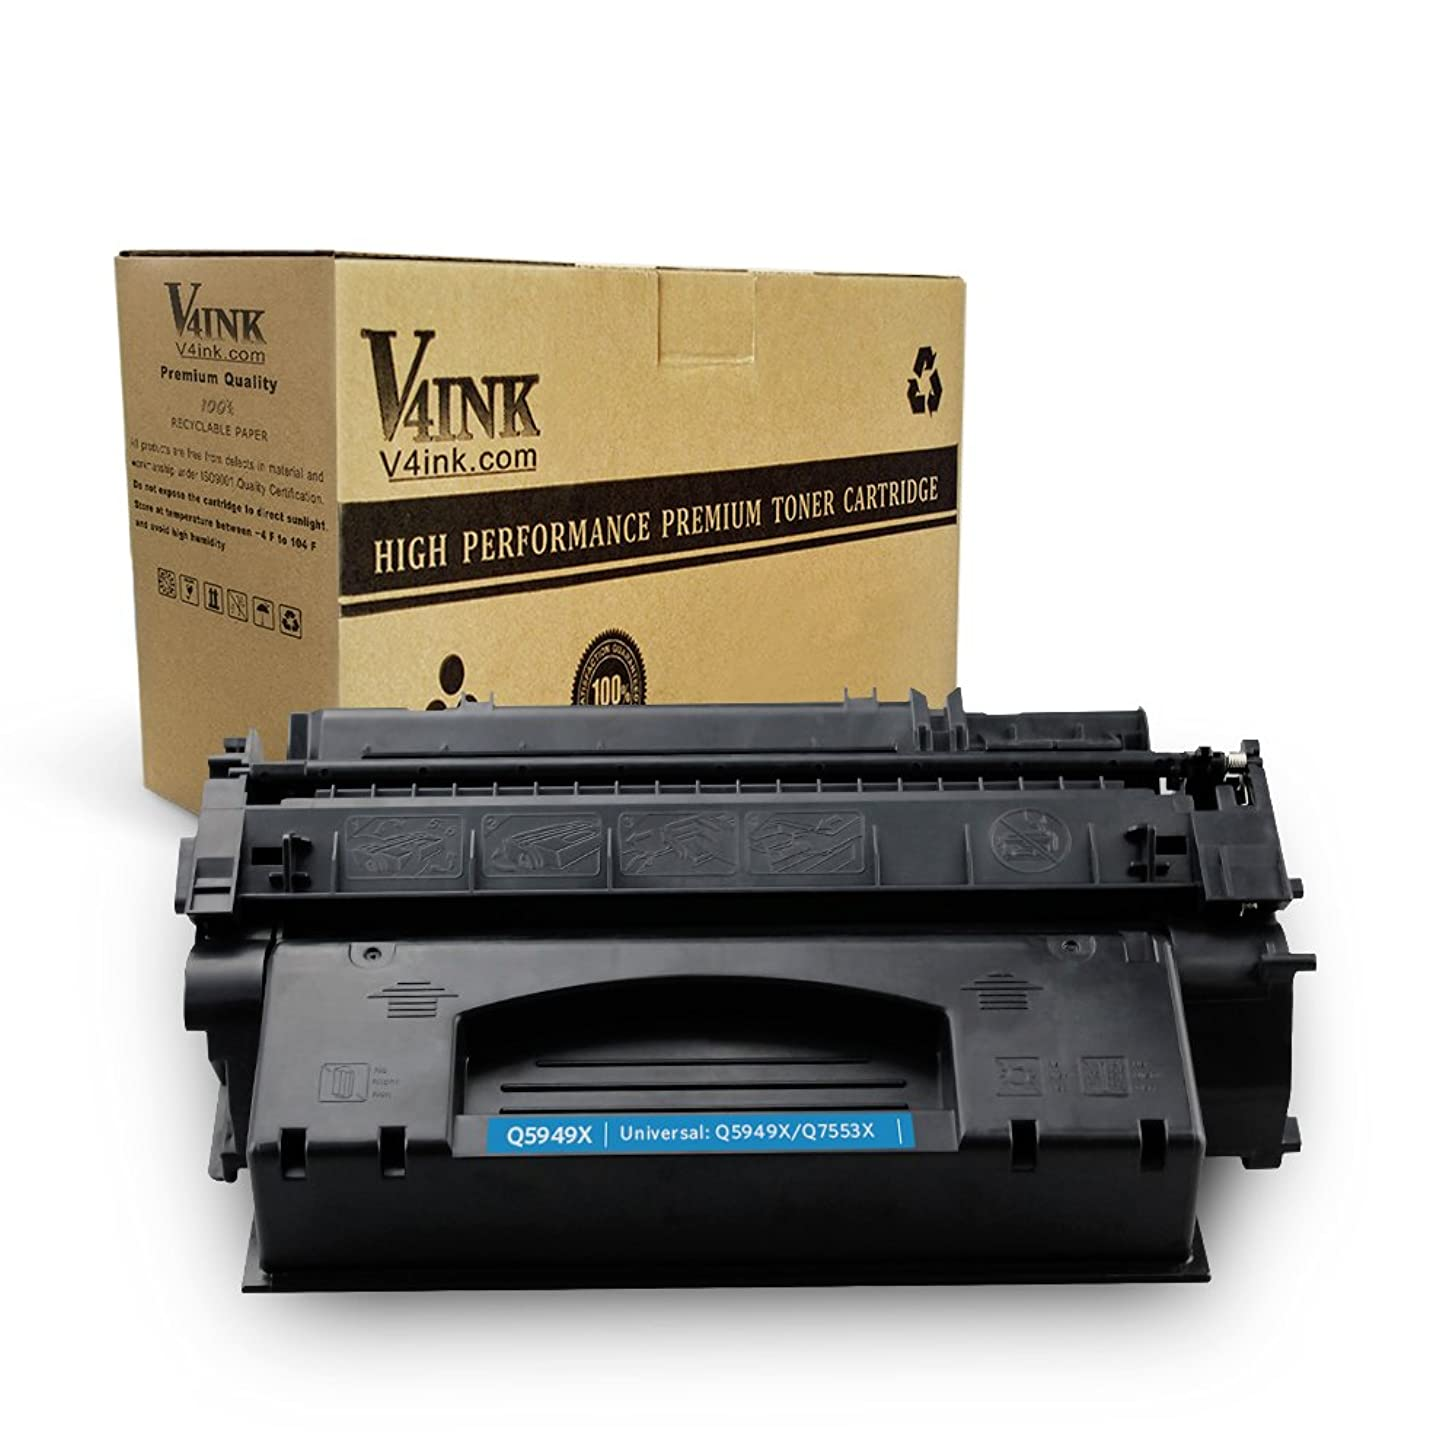 V4INK Compatible Toner Cartridge Replacement for HP 49X Q5949X HP 53X Q7553X (Black, 1-Pack), for use in HP Laserjet P2010 P2014 P2015 P2015d P2015dn P2015n P2015x M2727MFP M2727nf MFP Printer